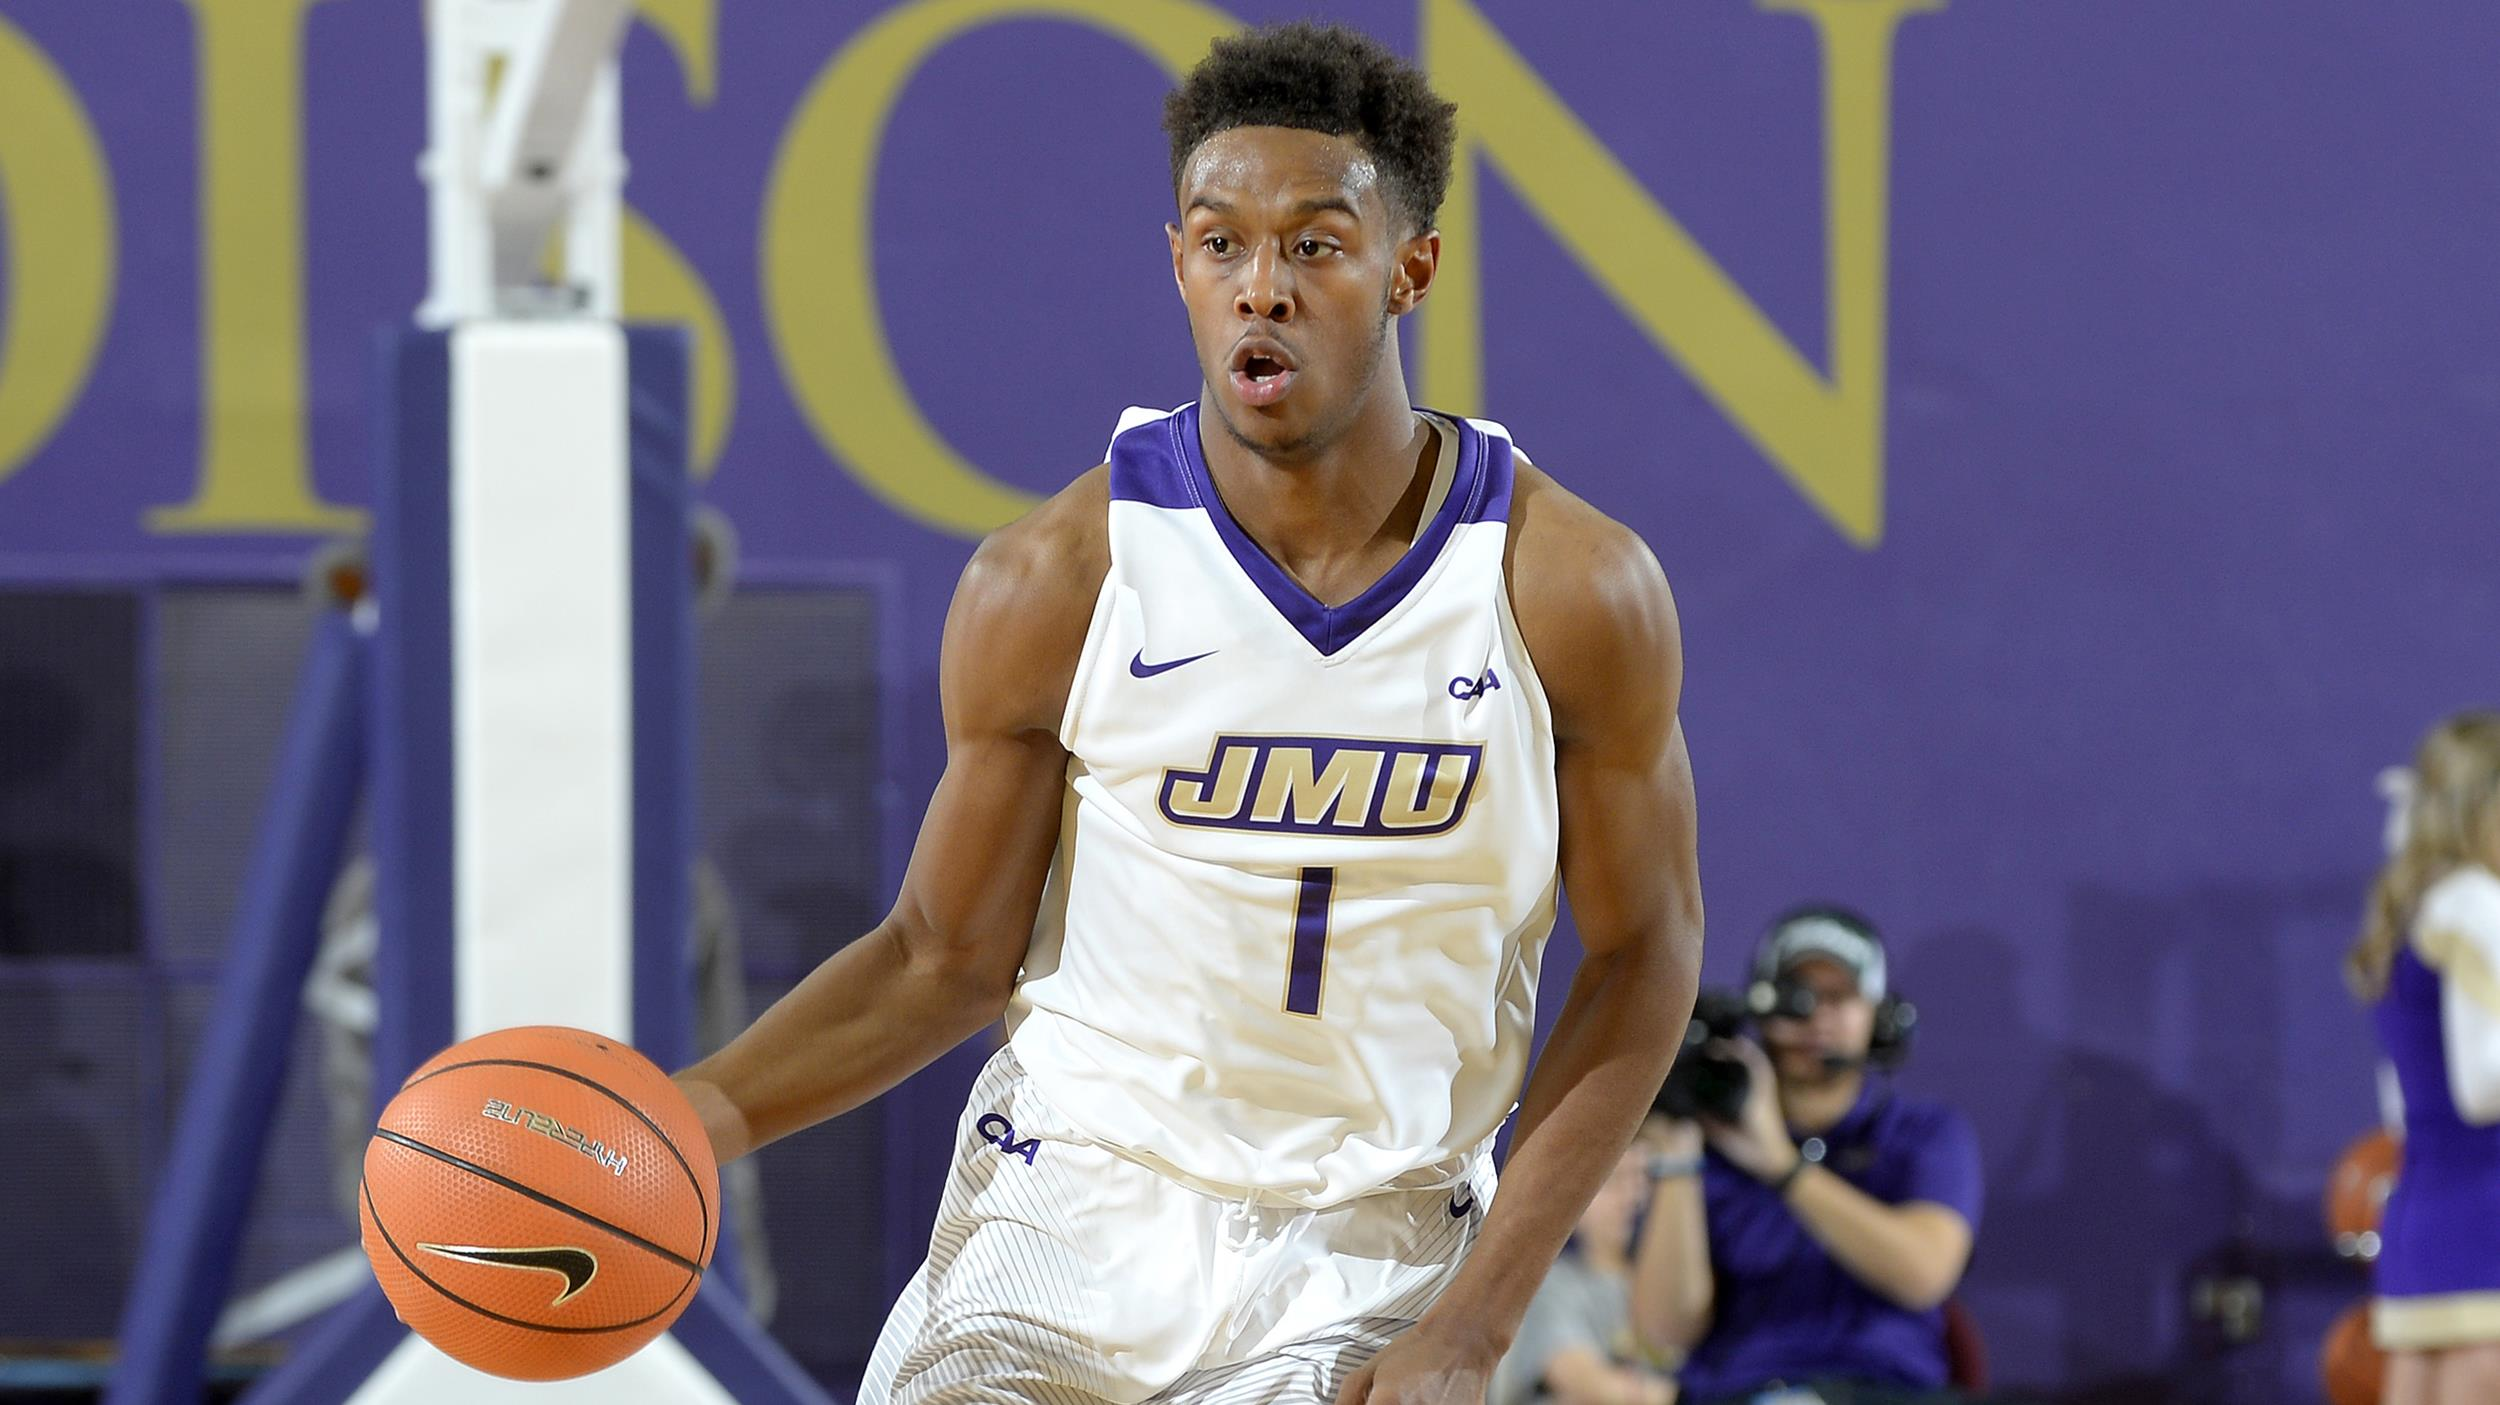 Men's Basketball: Dukes Tame Dragons in Back-and-Forth Battle)